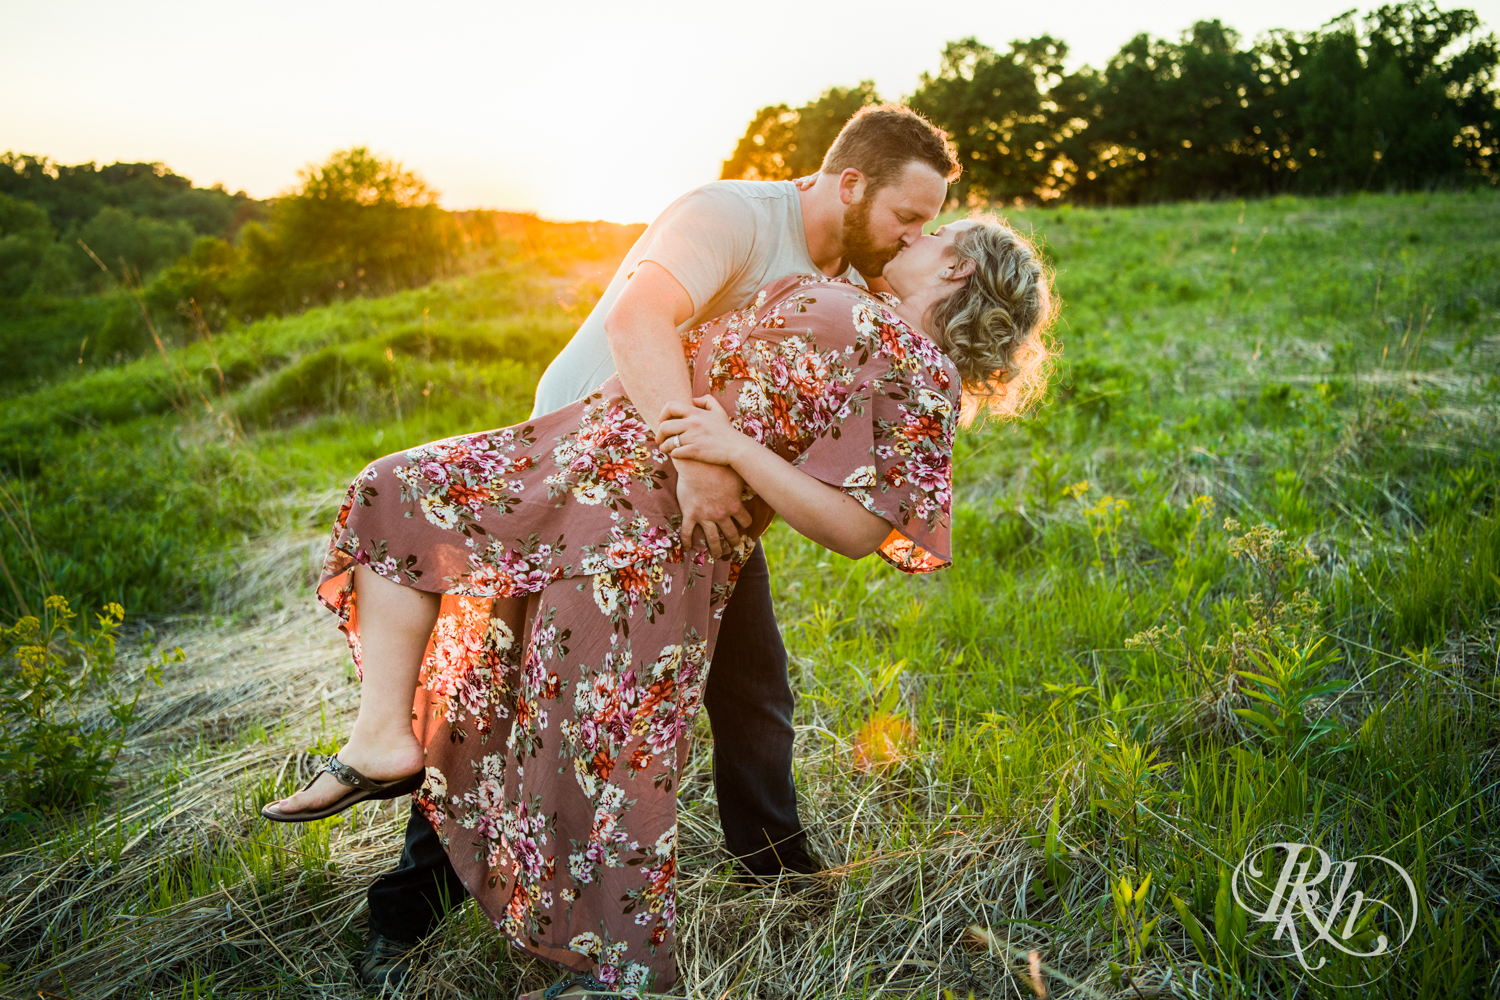 Constance & Josh - Minnesota Engagement Photography - Lebanon Hills Regional Park - RKH Images - Blog (18 of 18).jpg